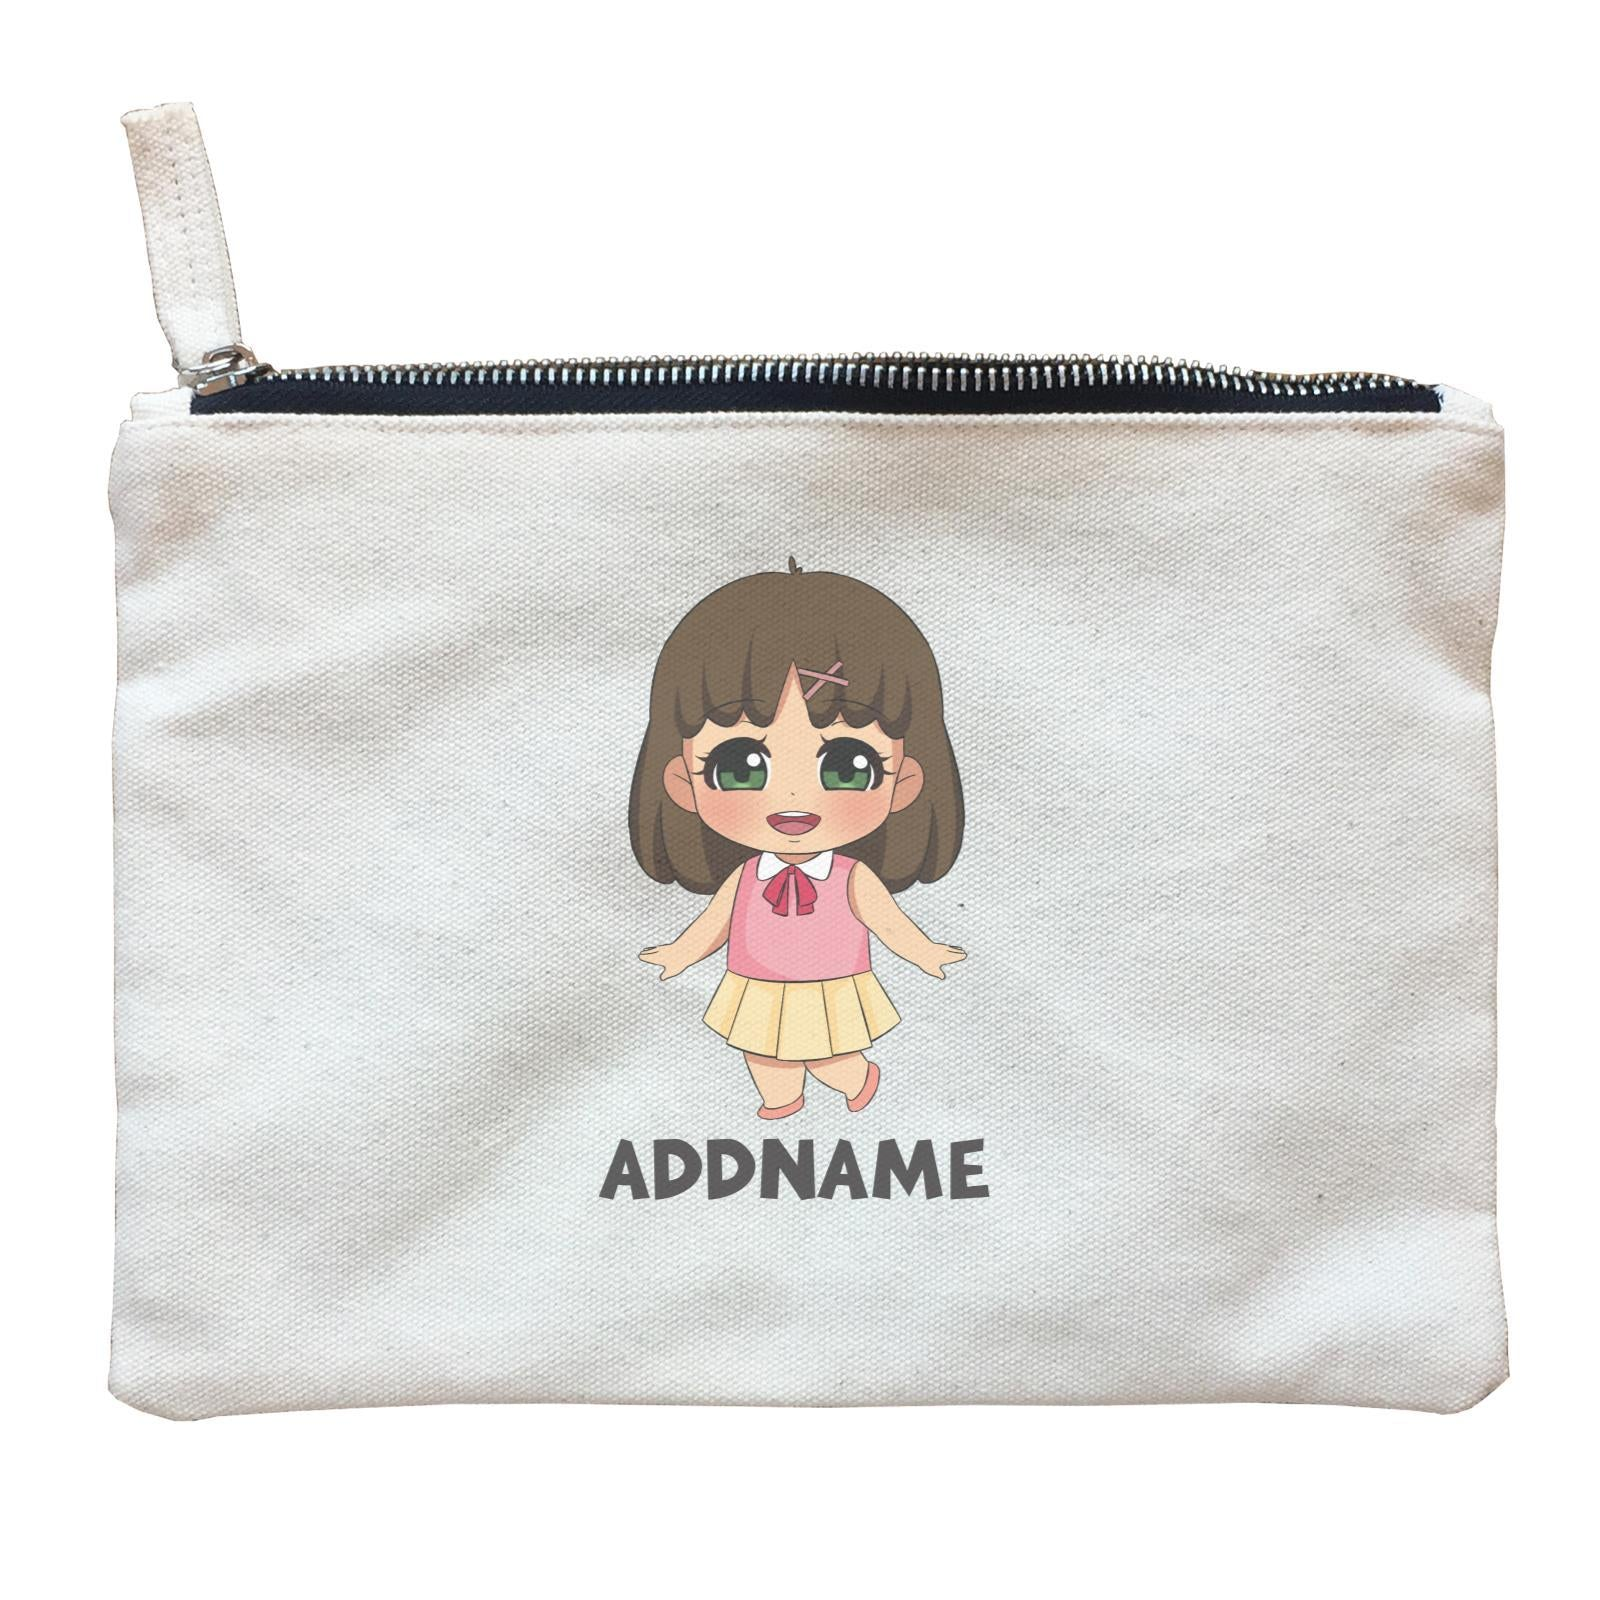 Children's Day Gift Series Little Chinese Girl Addname  Zipper Pouch